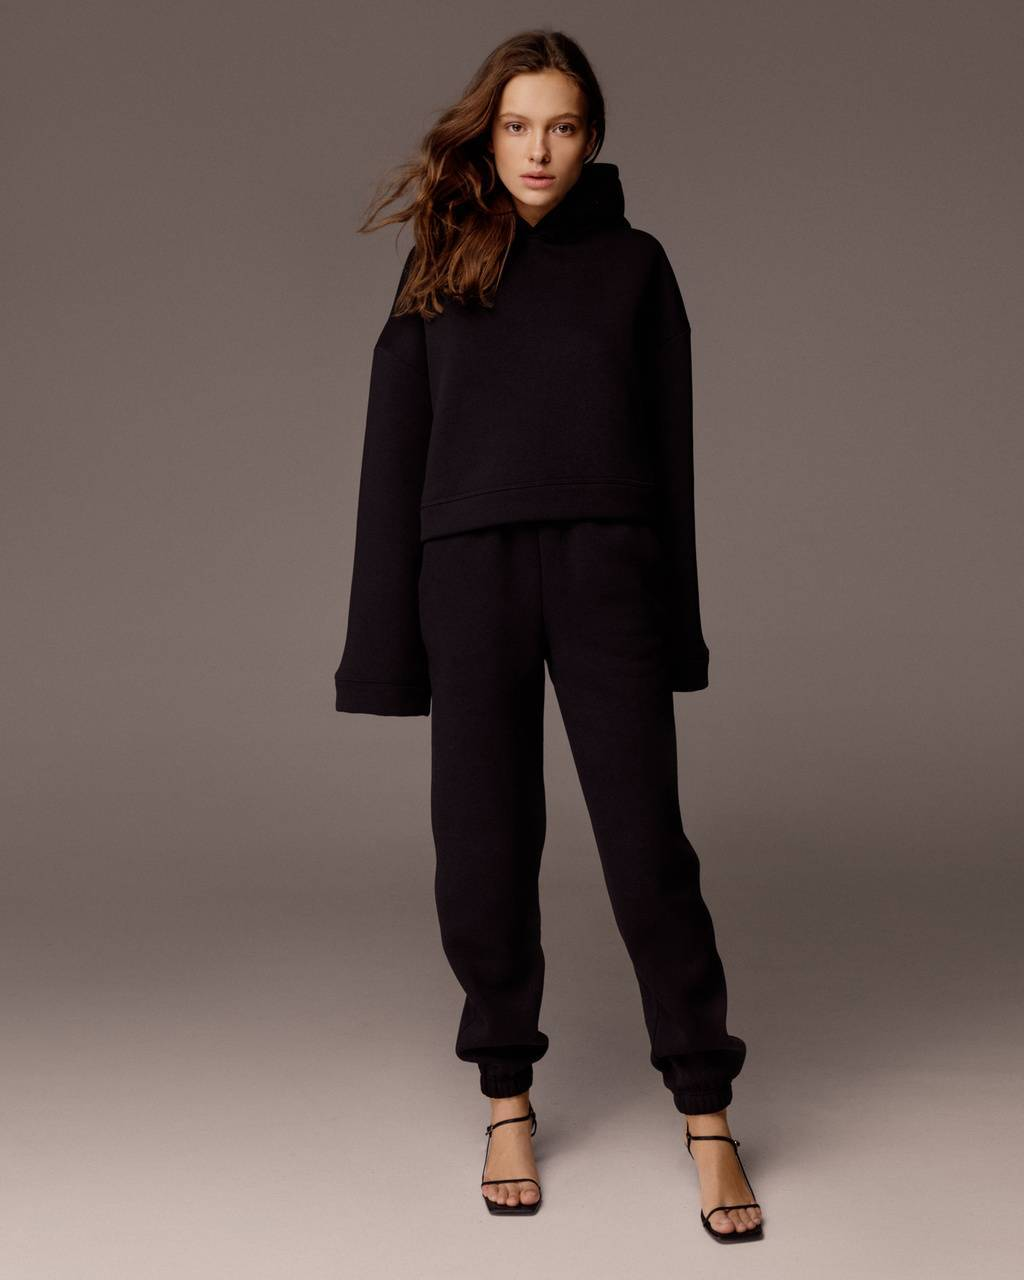 Fleece cotton oversize suit - 330 USD / 275 EUR